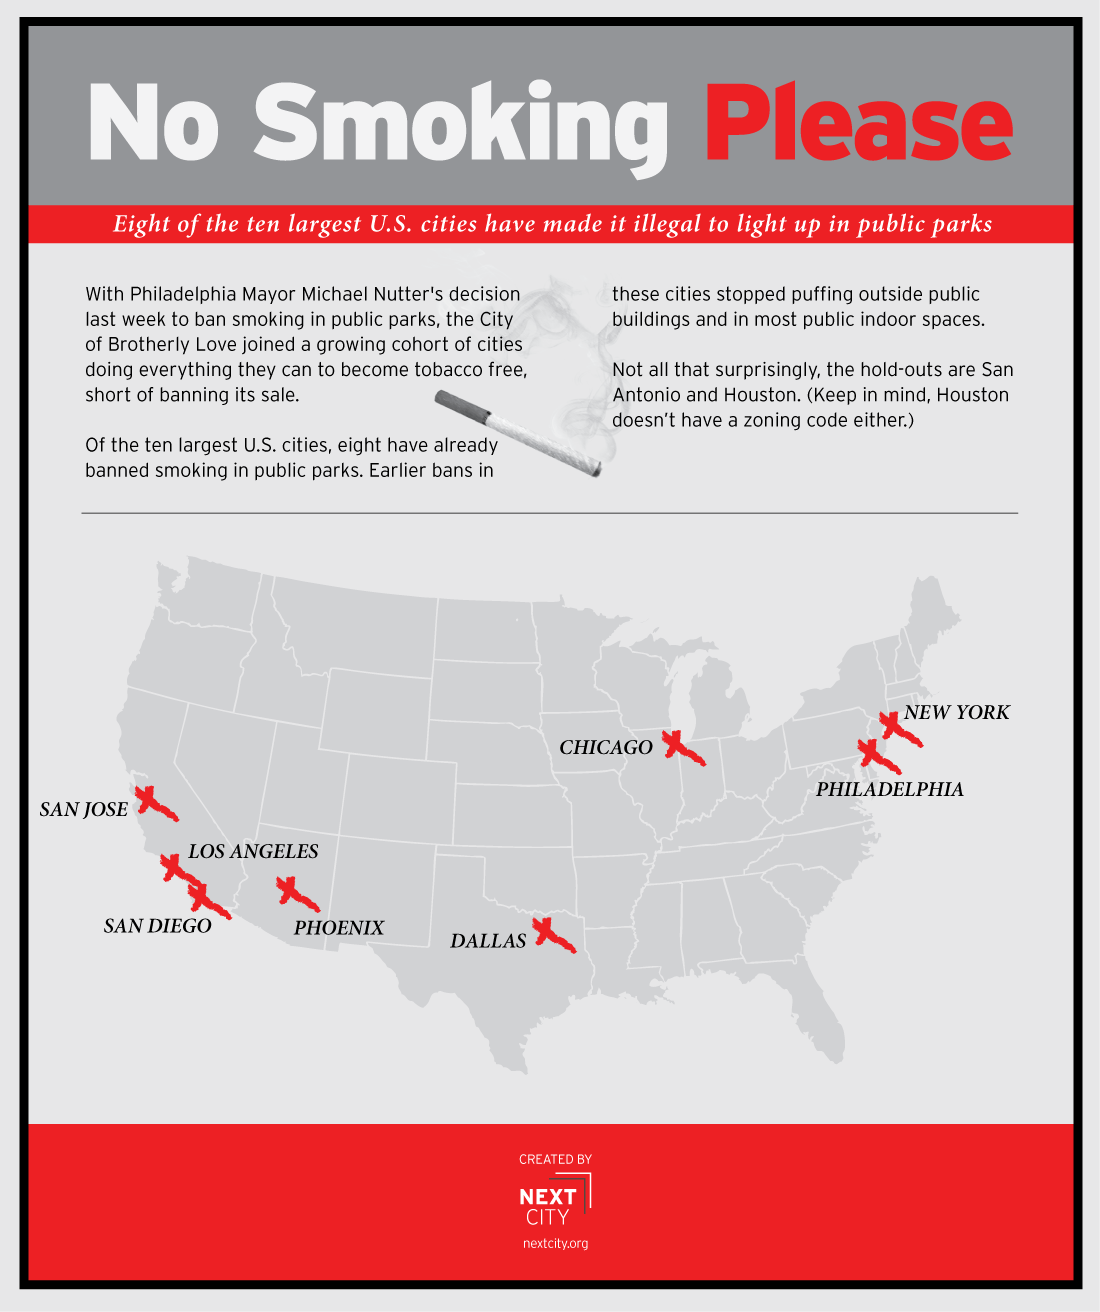 public health threat and philadelphia s new ban on puffing in parks had us wondering which big cities keep putting the squeeze on smokers